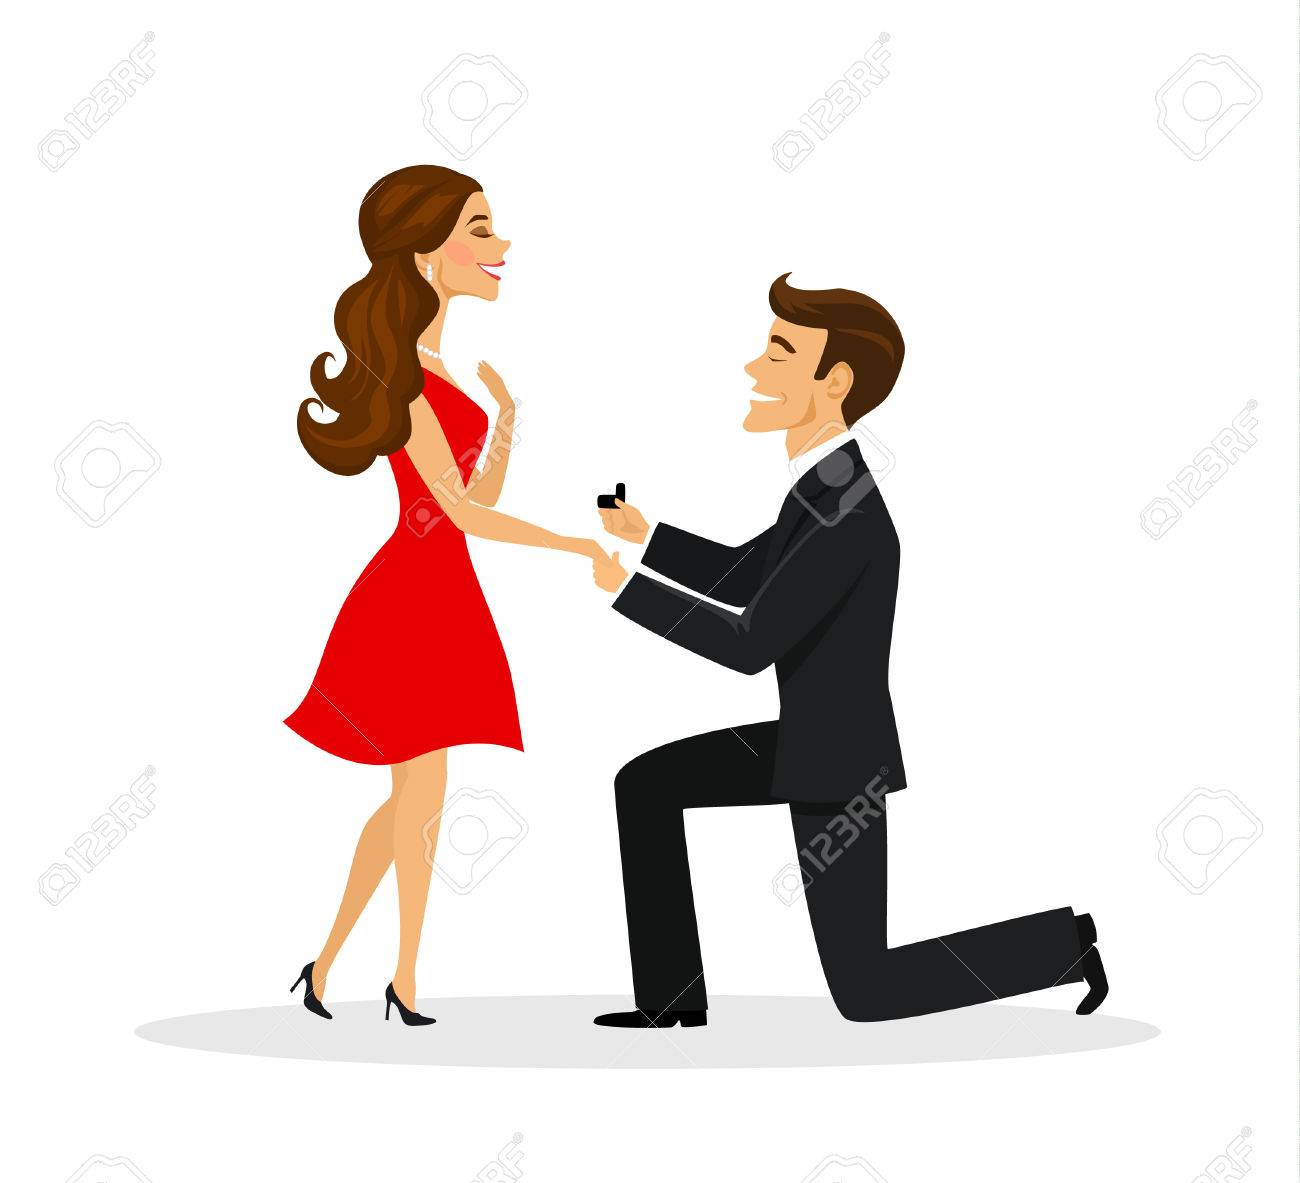 Man Proposing To A Woman Standing On Knee Illustration.